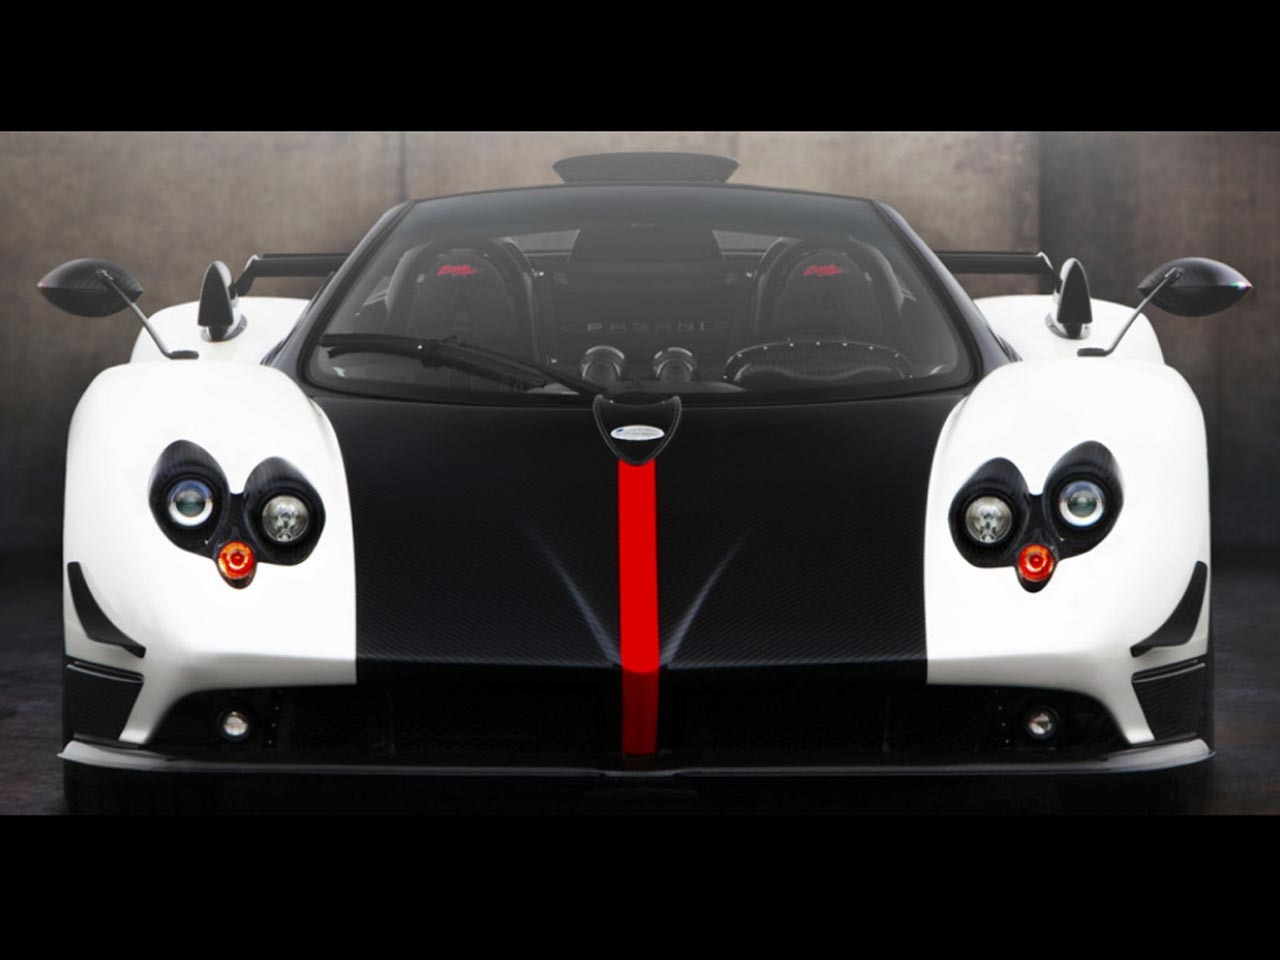 World's 9 most ridiculously expensive cars - CBS News